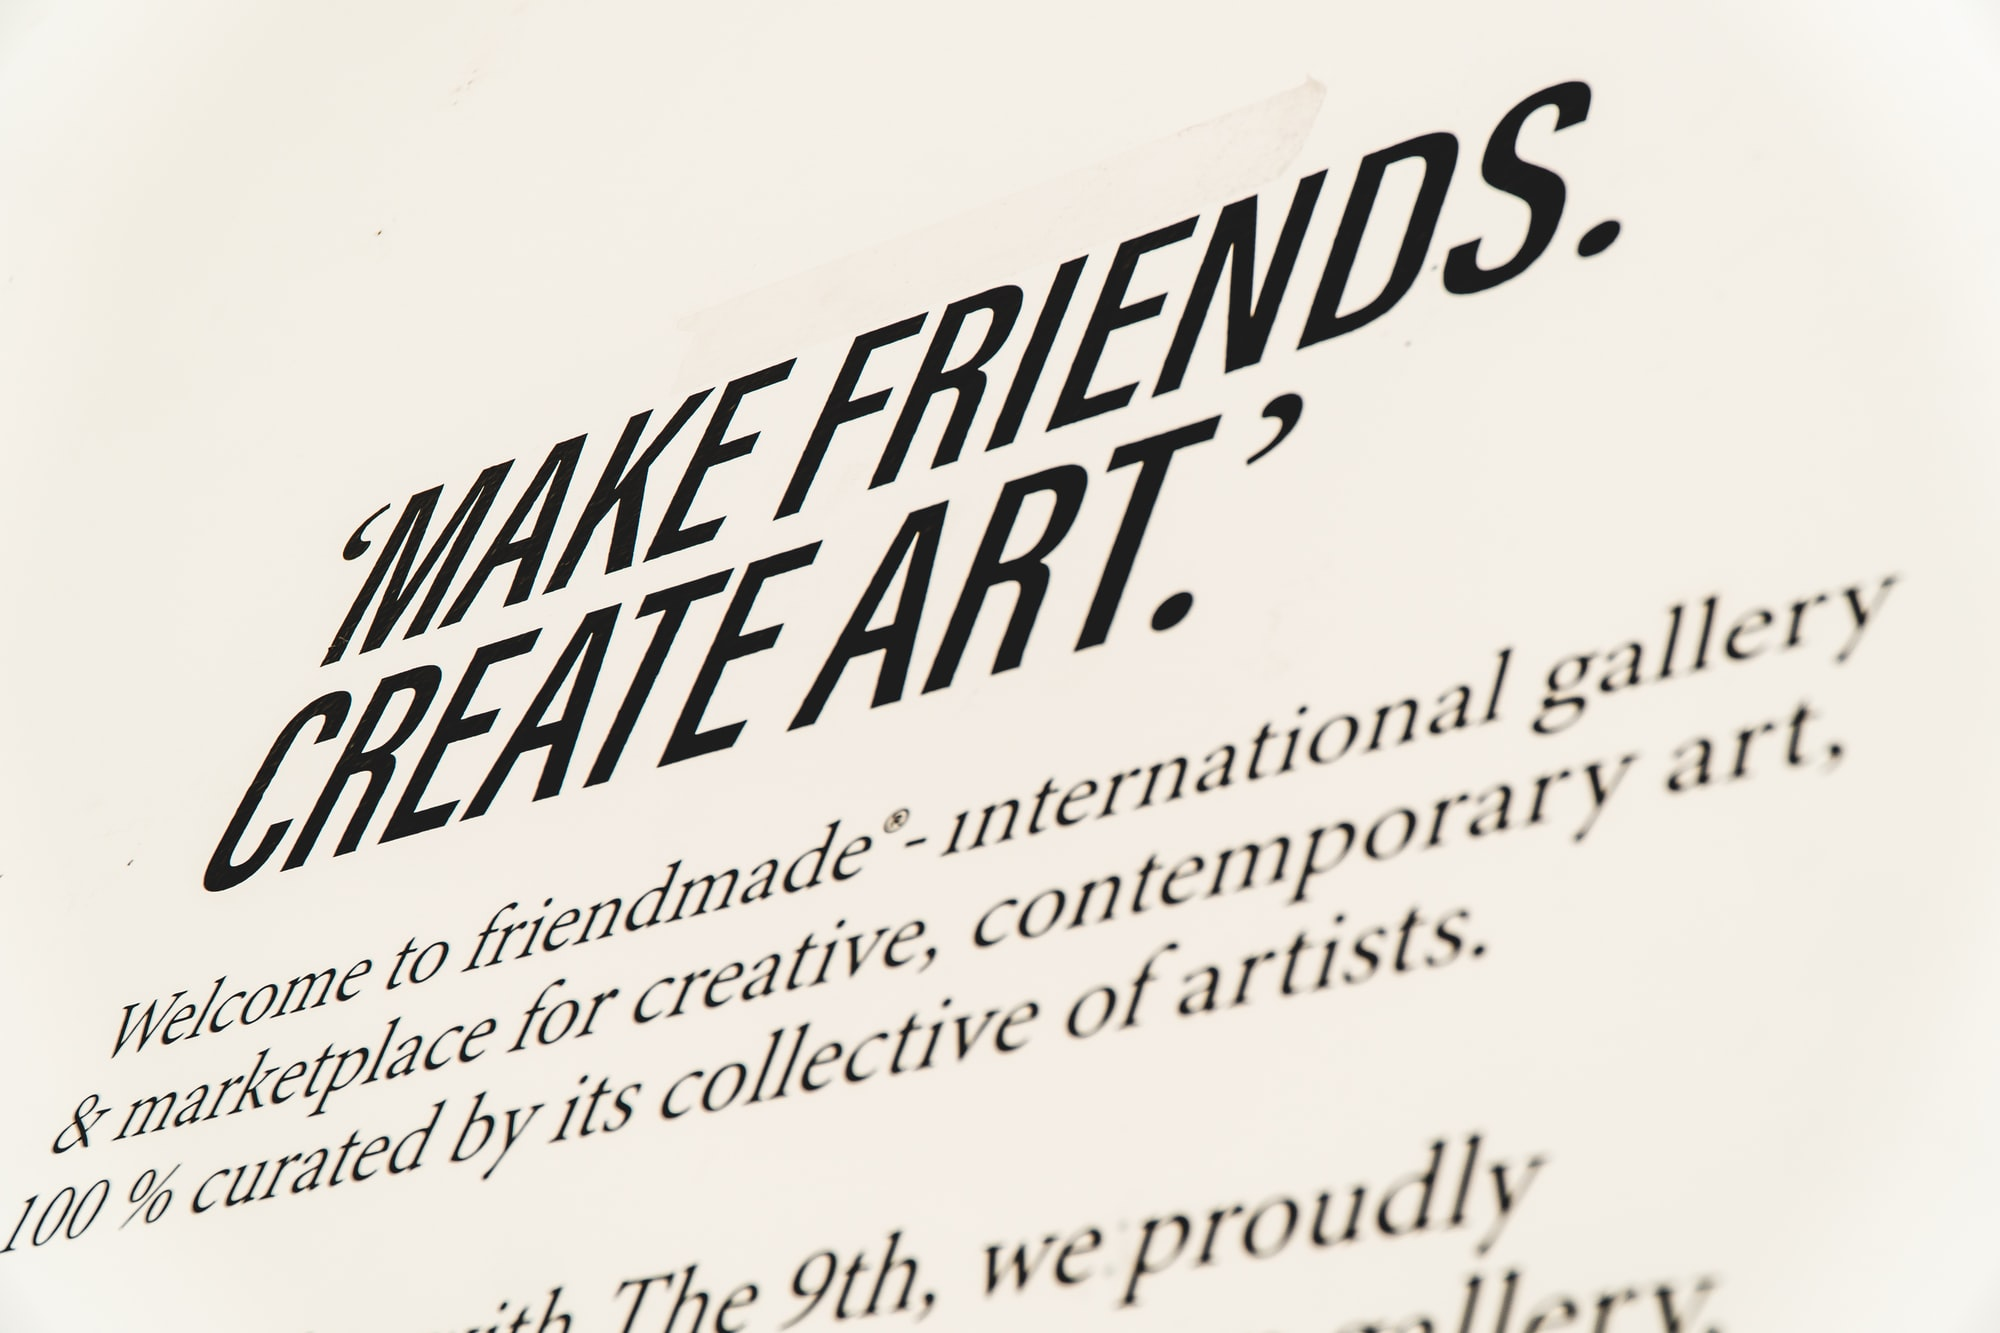 MAKE FRIENDS, CREATE ART.